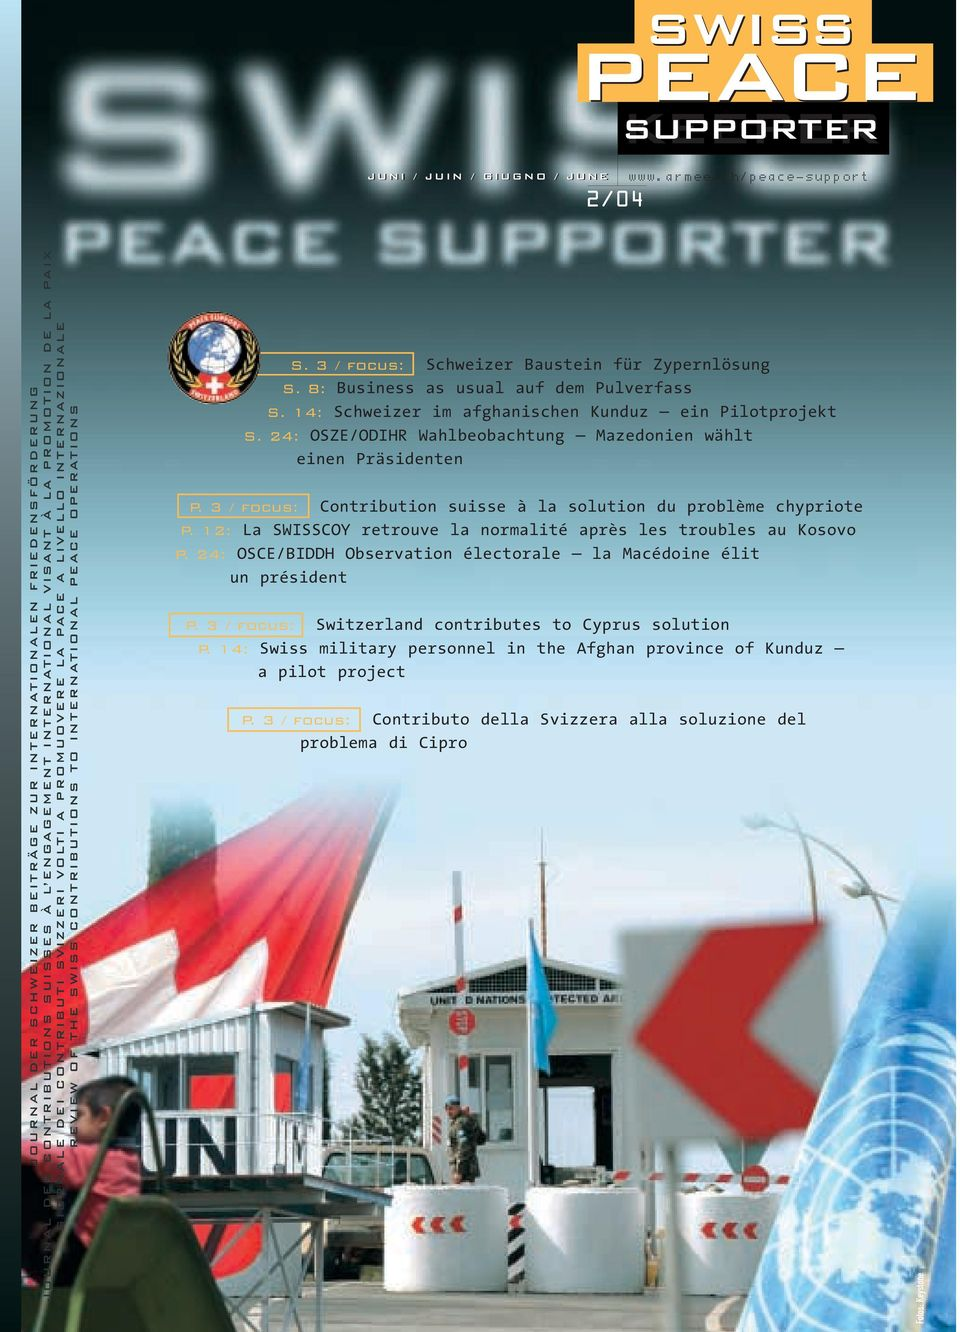 CONTRIBUTI SVIZZERI VOLTI A PROMUOVERE LA PACE A LIVELLO INTERNAZIONALE REVIEW OF THE SWISS CONTRIBUTIONS TO INTERNATIONAL PEACE OPERATIONS S. 3 / focus: Schweizer Baustein für Zypernlösung S.